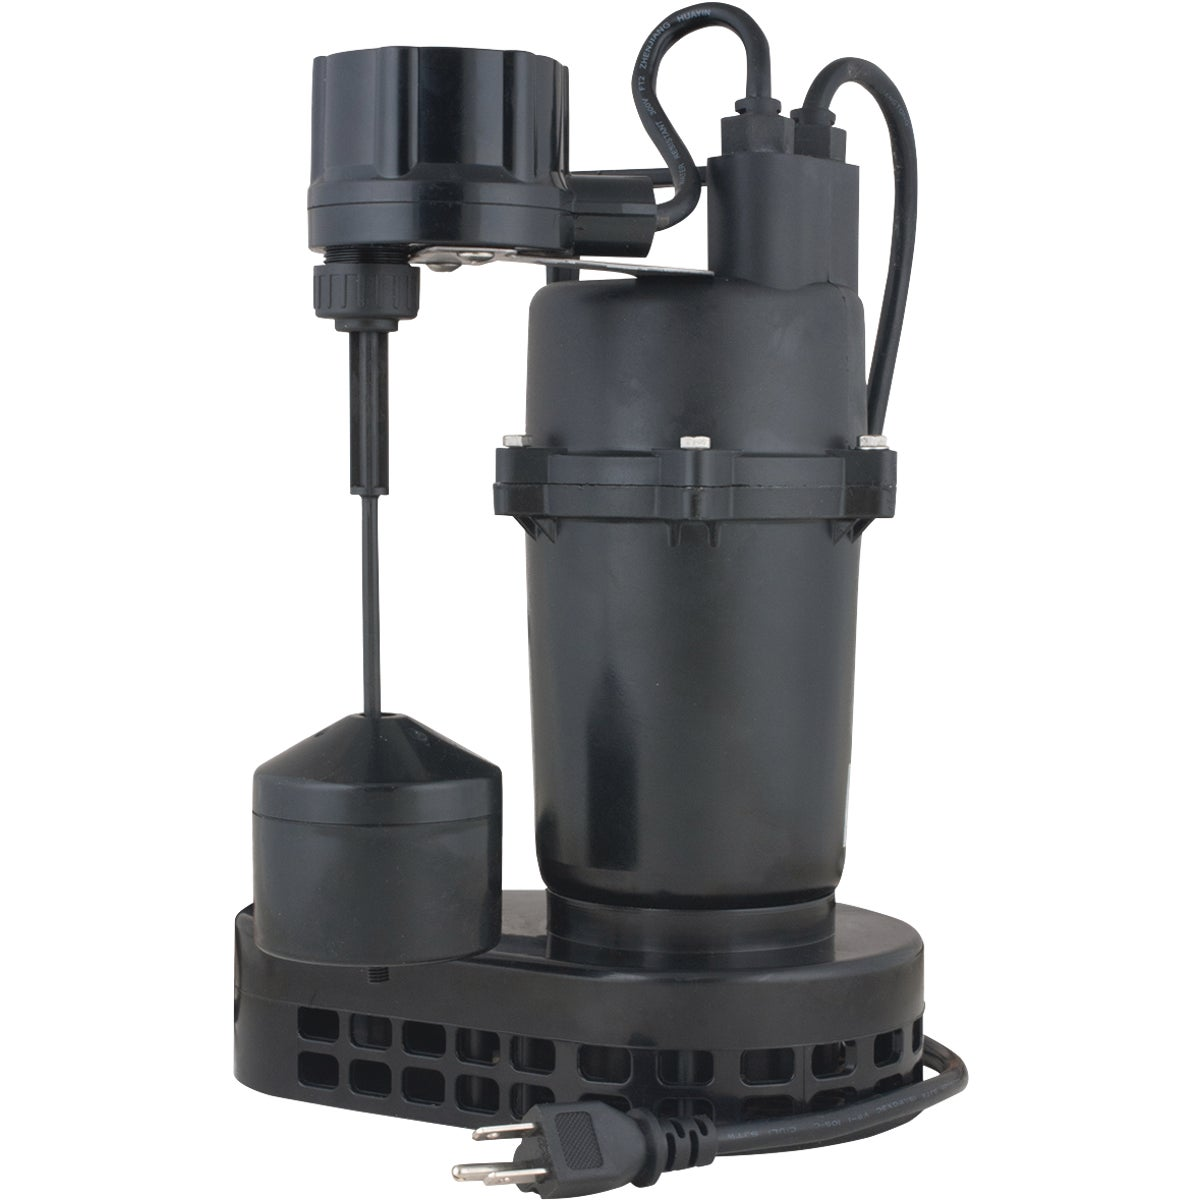 1/2HP PLASTIC SUMP PUMP - 5SPH-L by Star Water Systems